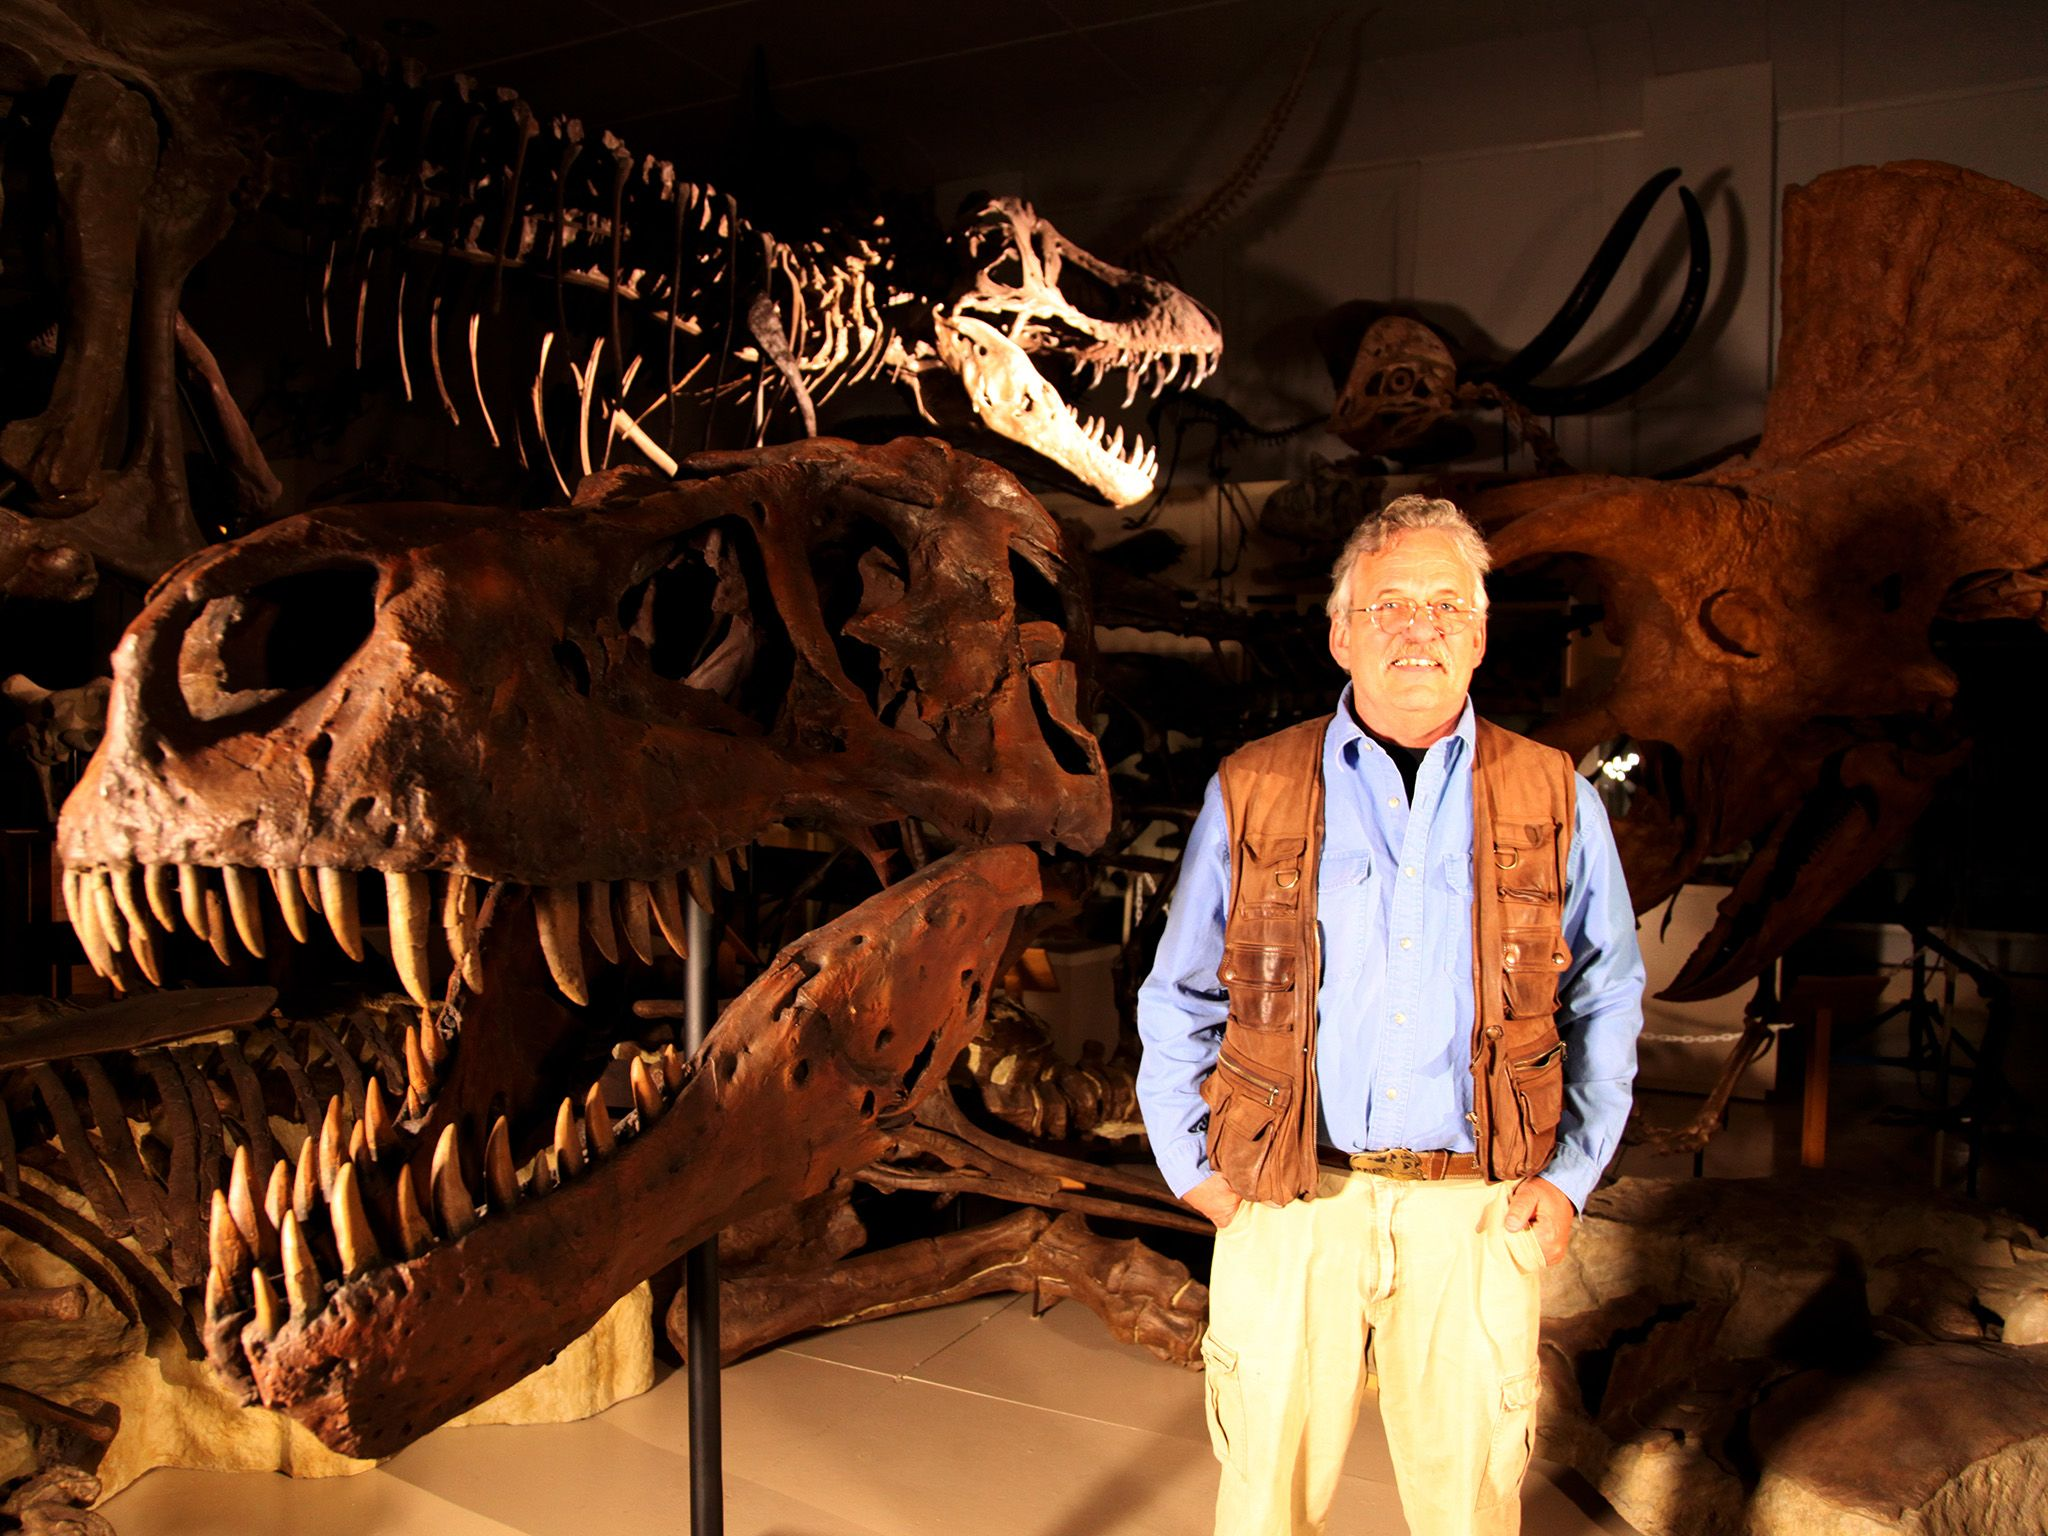 Hill City, South Dakota : Pete Larson, paleontologo e presidente del Black Hill Institute of... [Foto del giorno - giugno 2015]